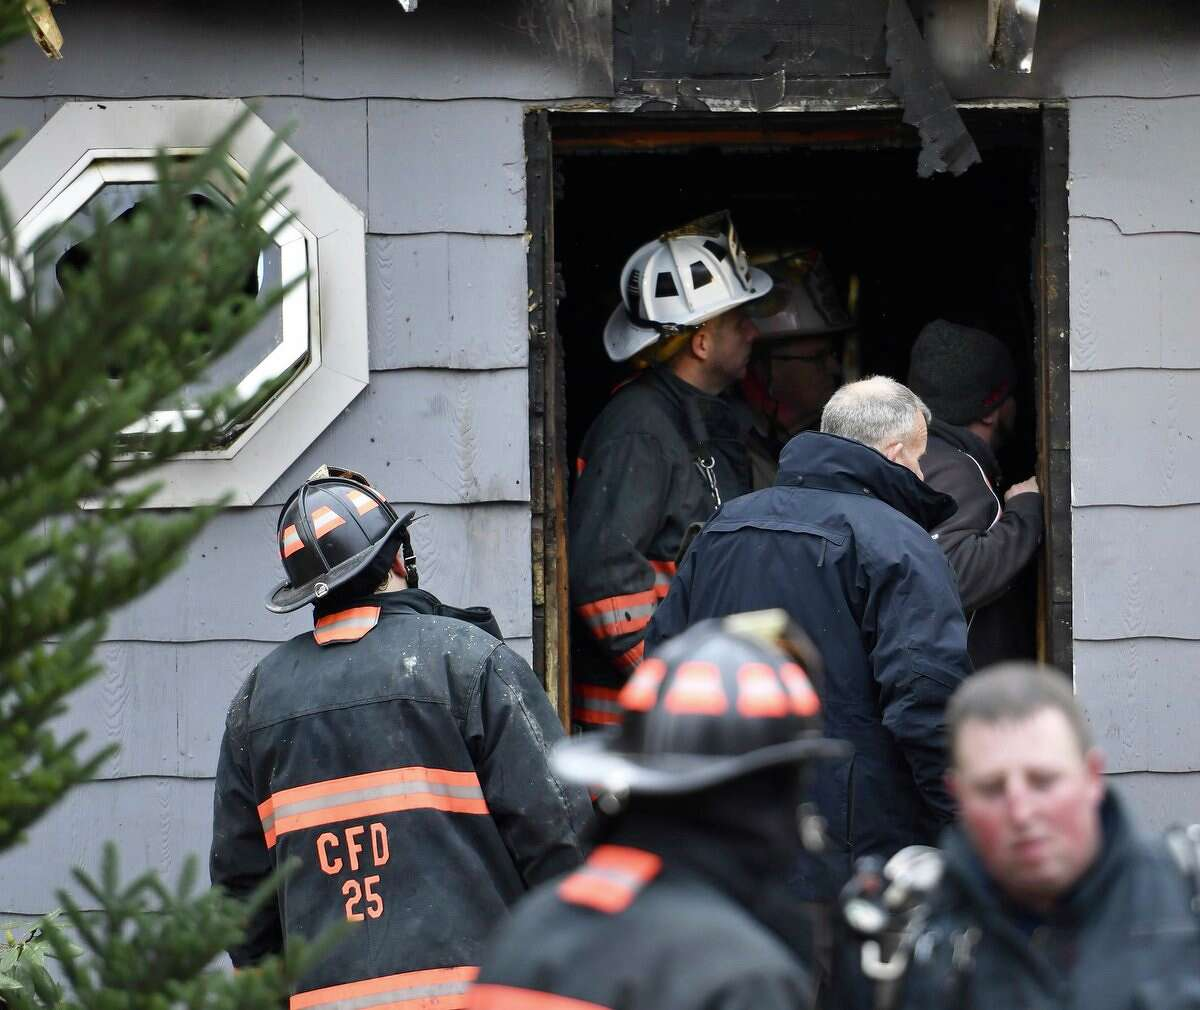 Firefighters work at the scene of a fire that damaged a home Tuesday morning, Nov. 14, 2017, in Cambridge.